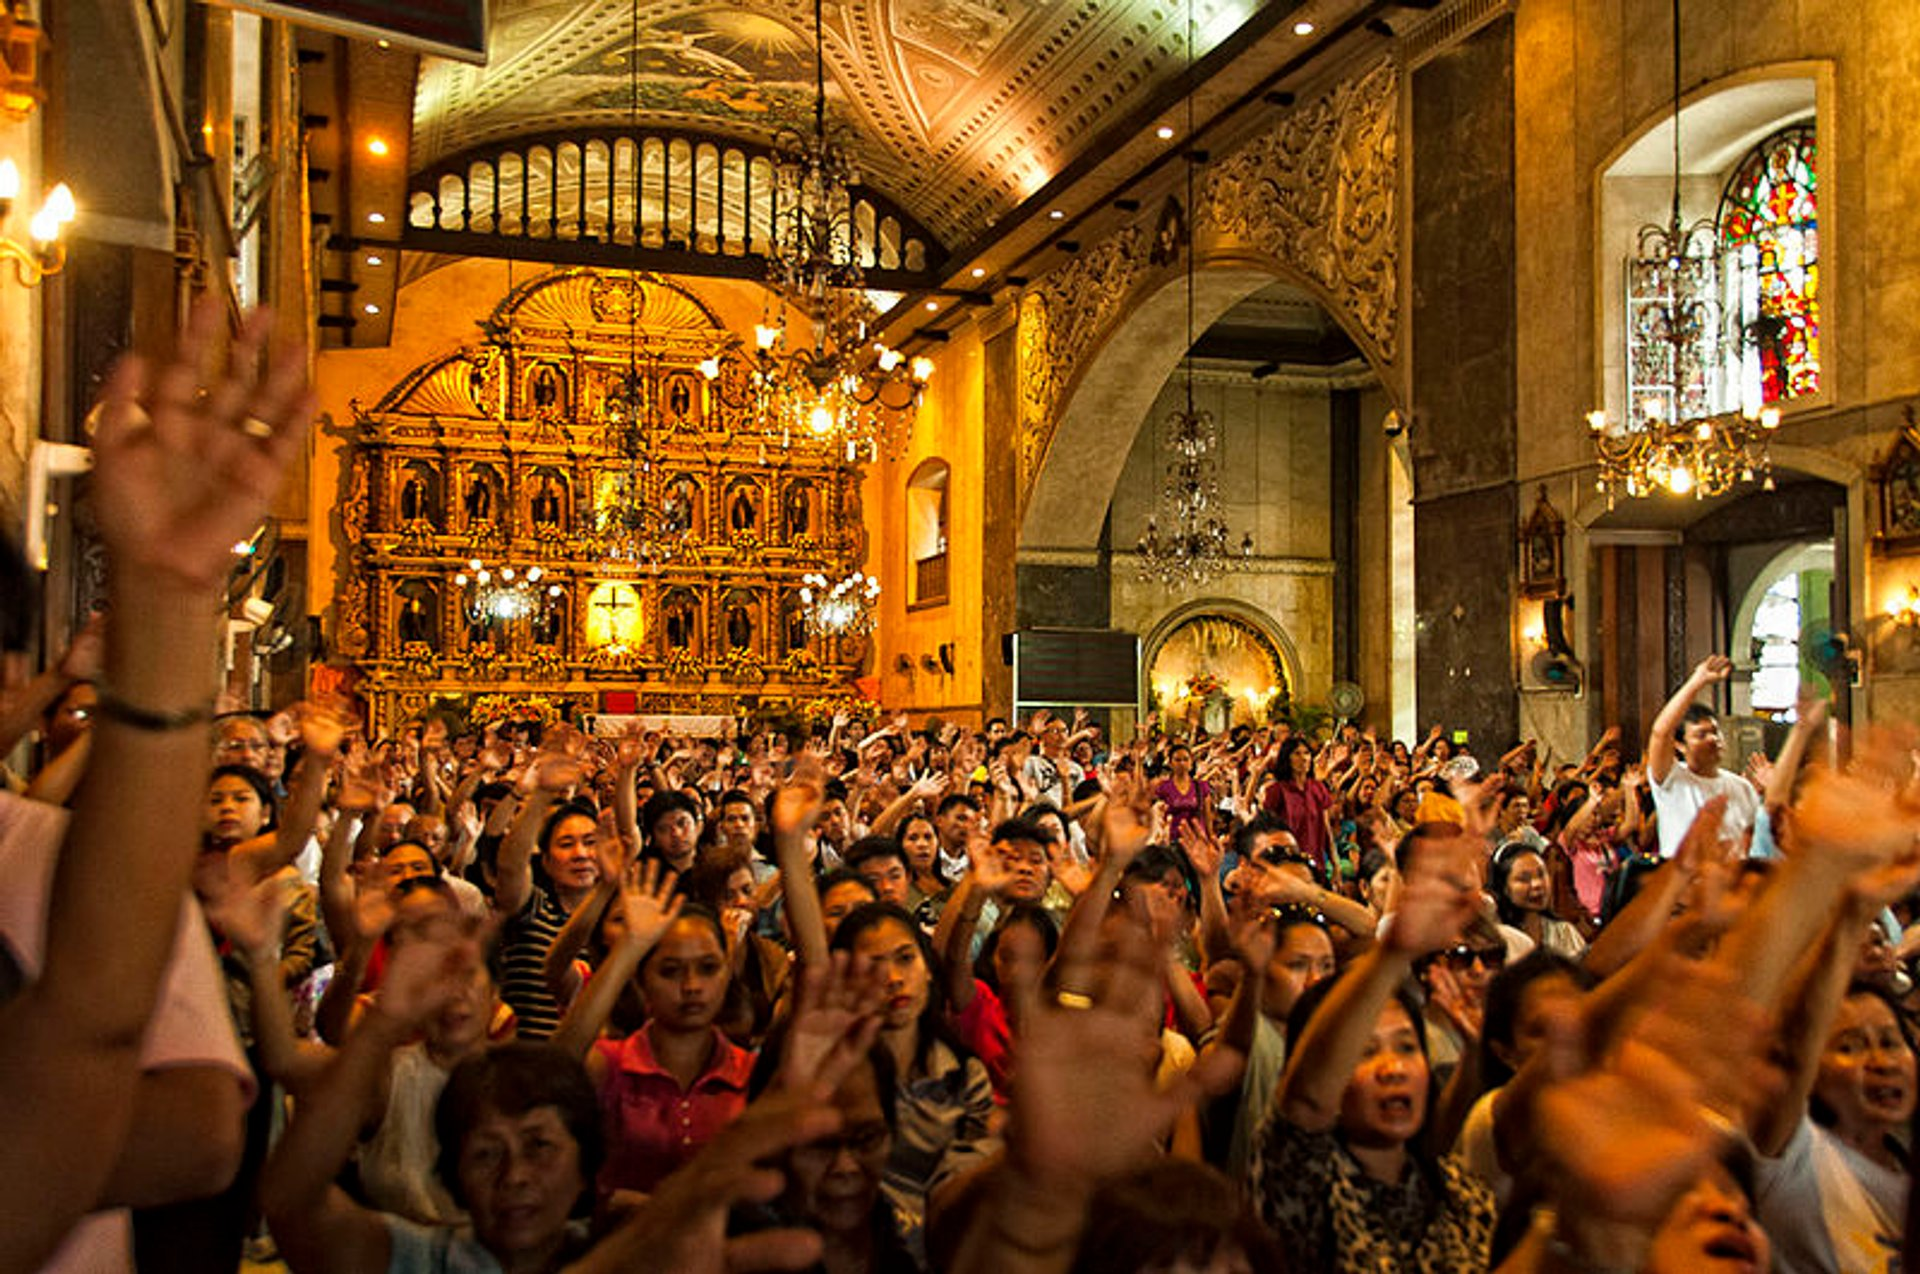 During Sinulog, overwhelming number of devotees utilize the Basilica to attend mass being held at the Pilgrim Center outside 2020